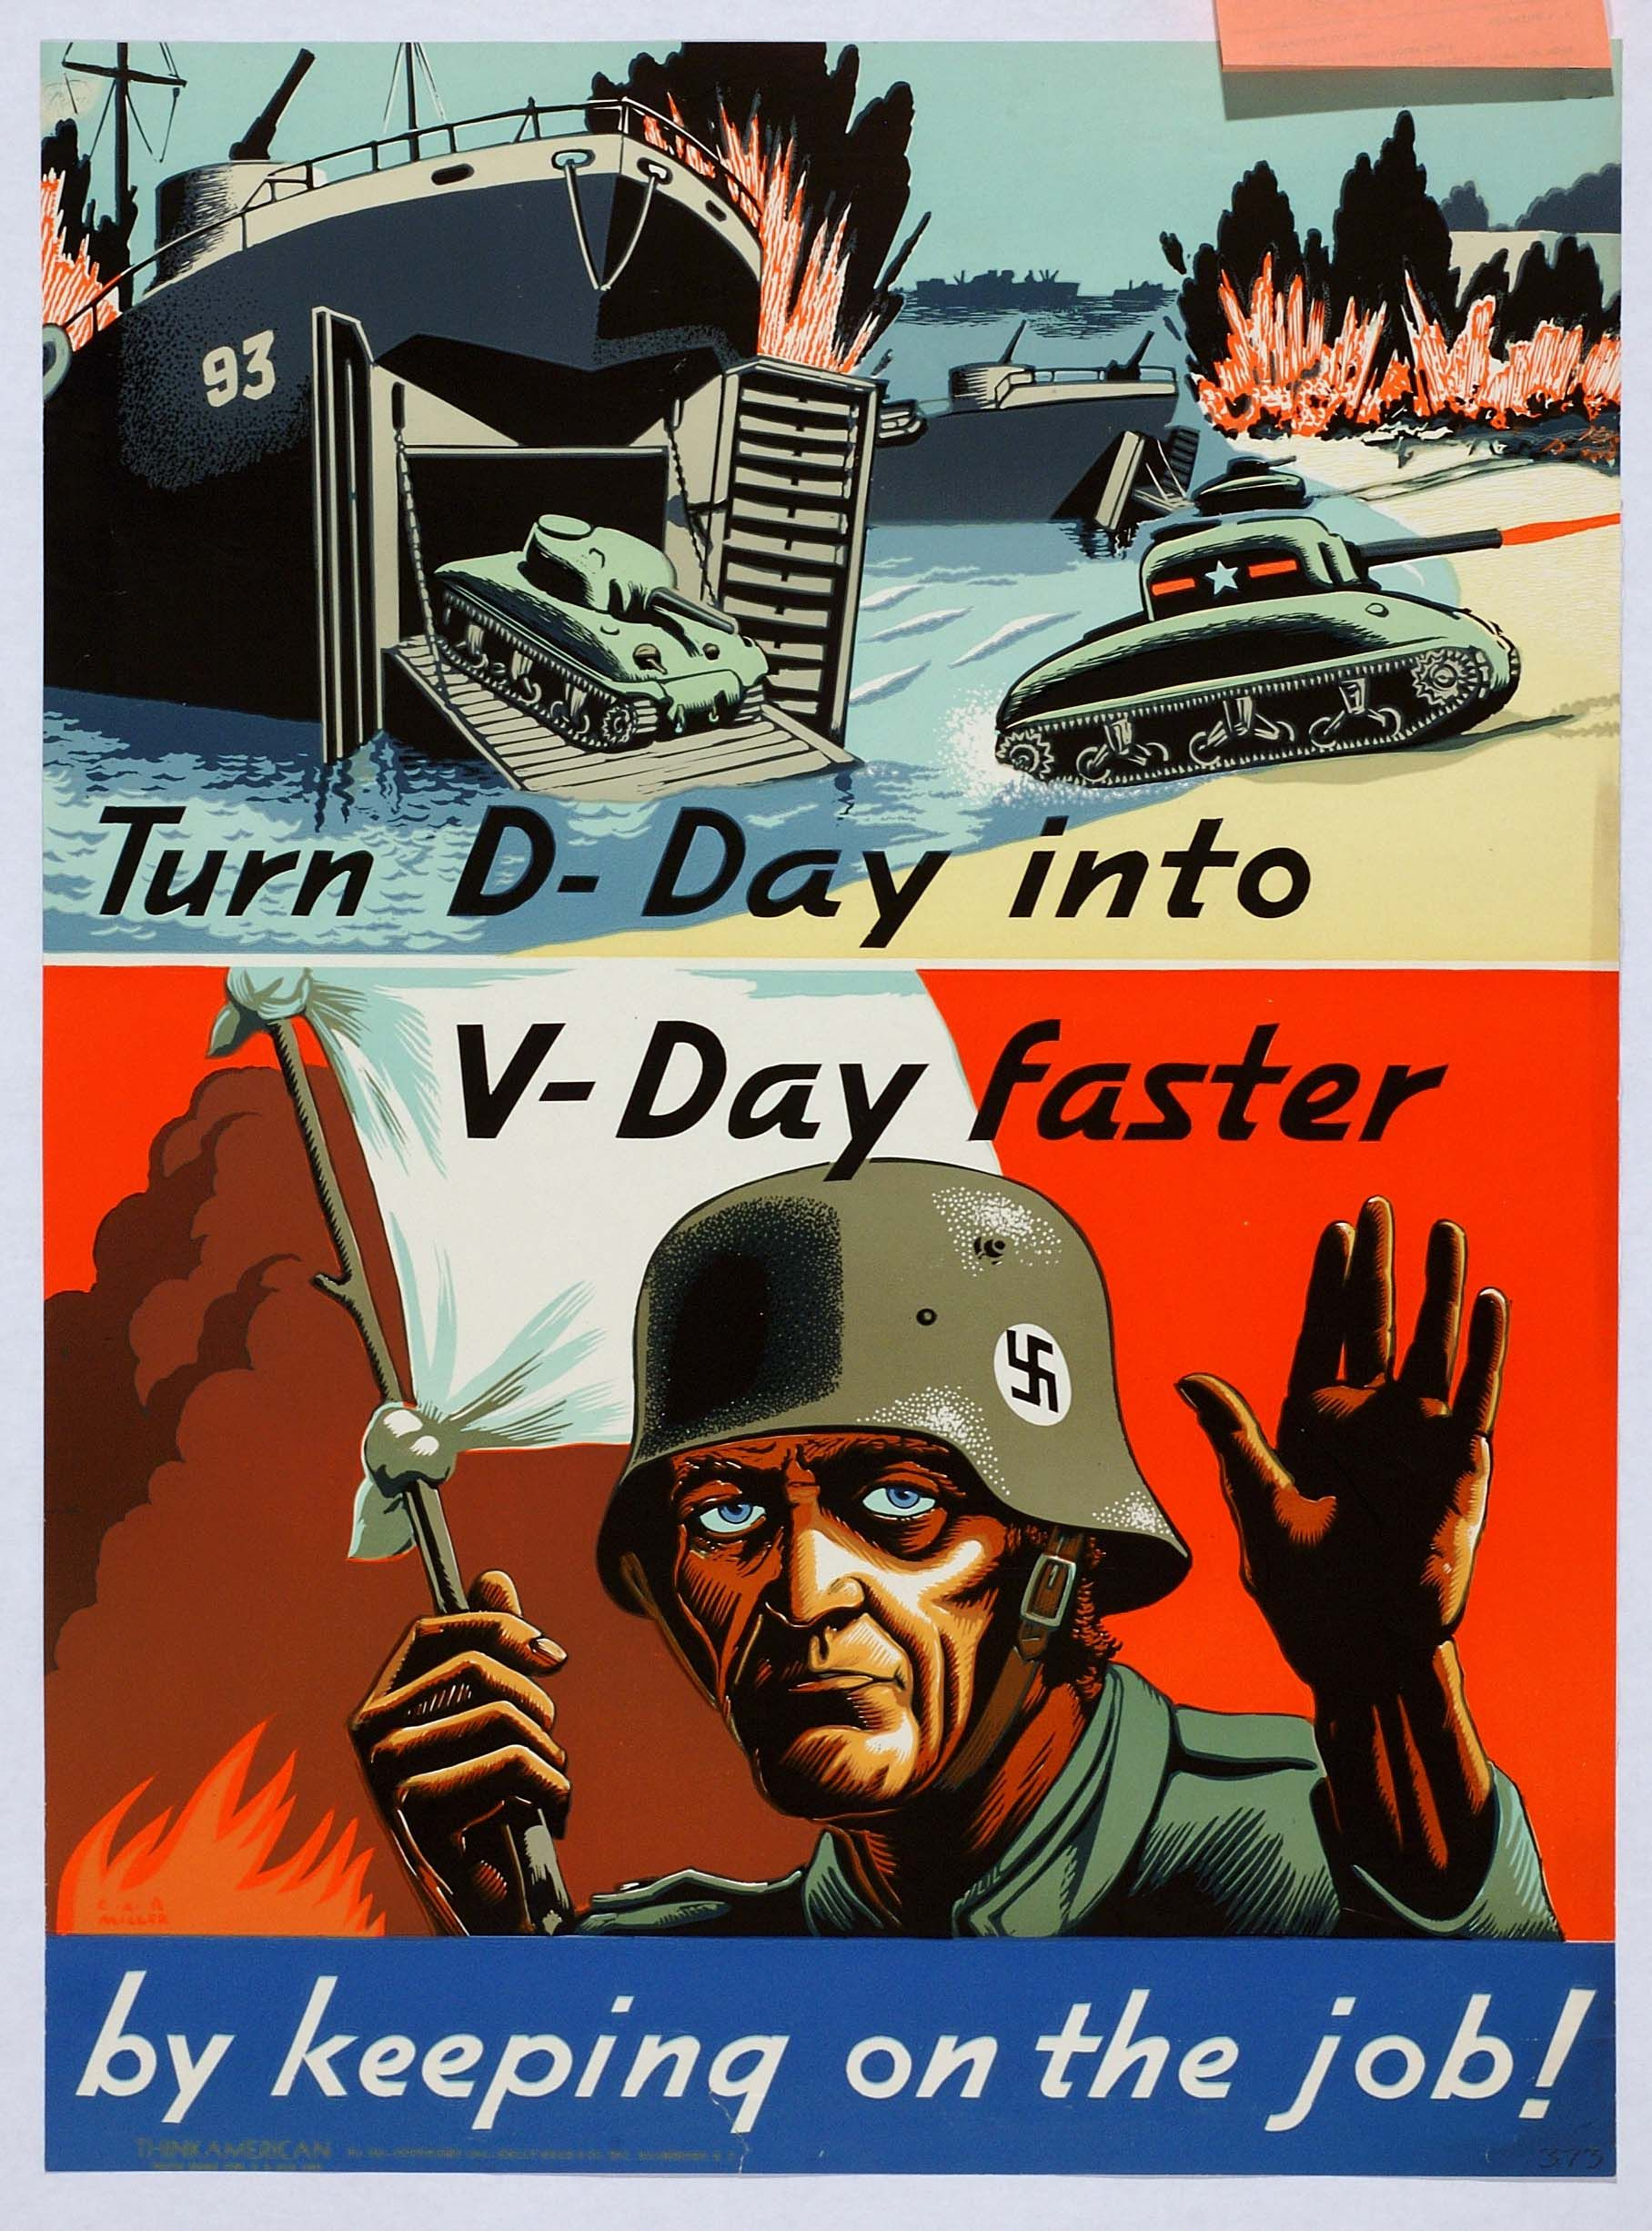 D Day June 6 1944 Us Miller Cxr C 1944 Wwii Posters Wwii Propaganda Posters Propaganda Posters